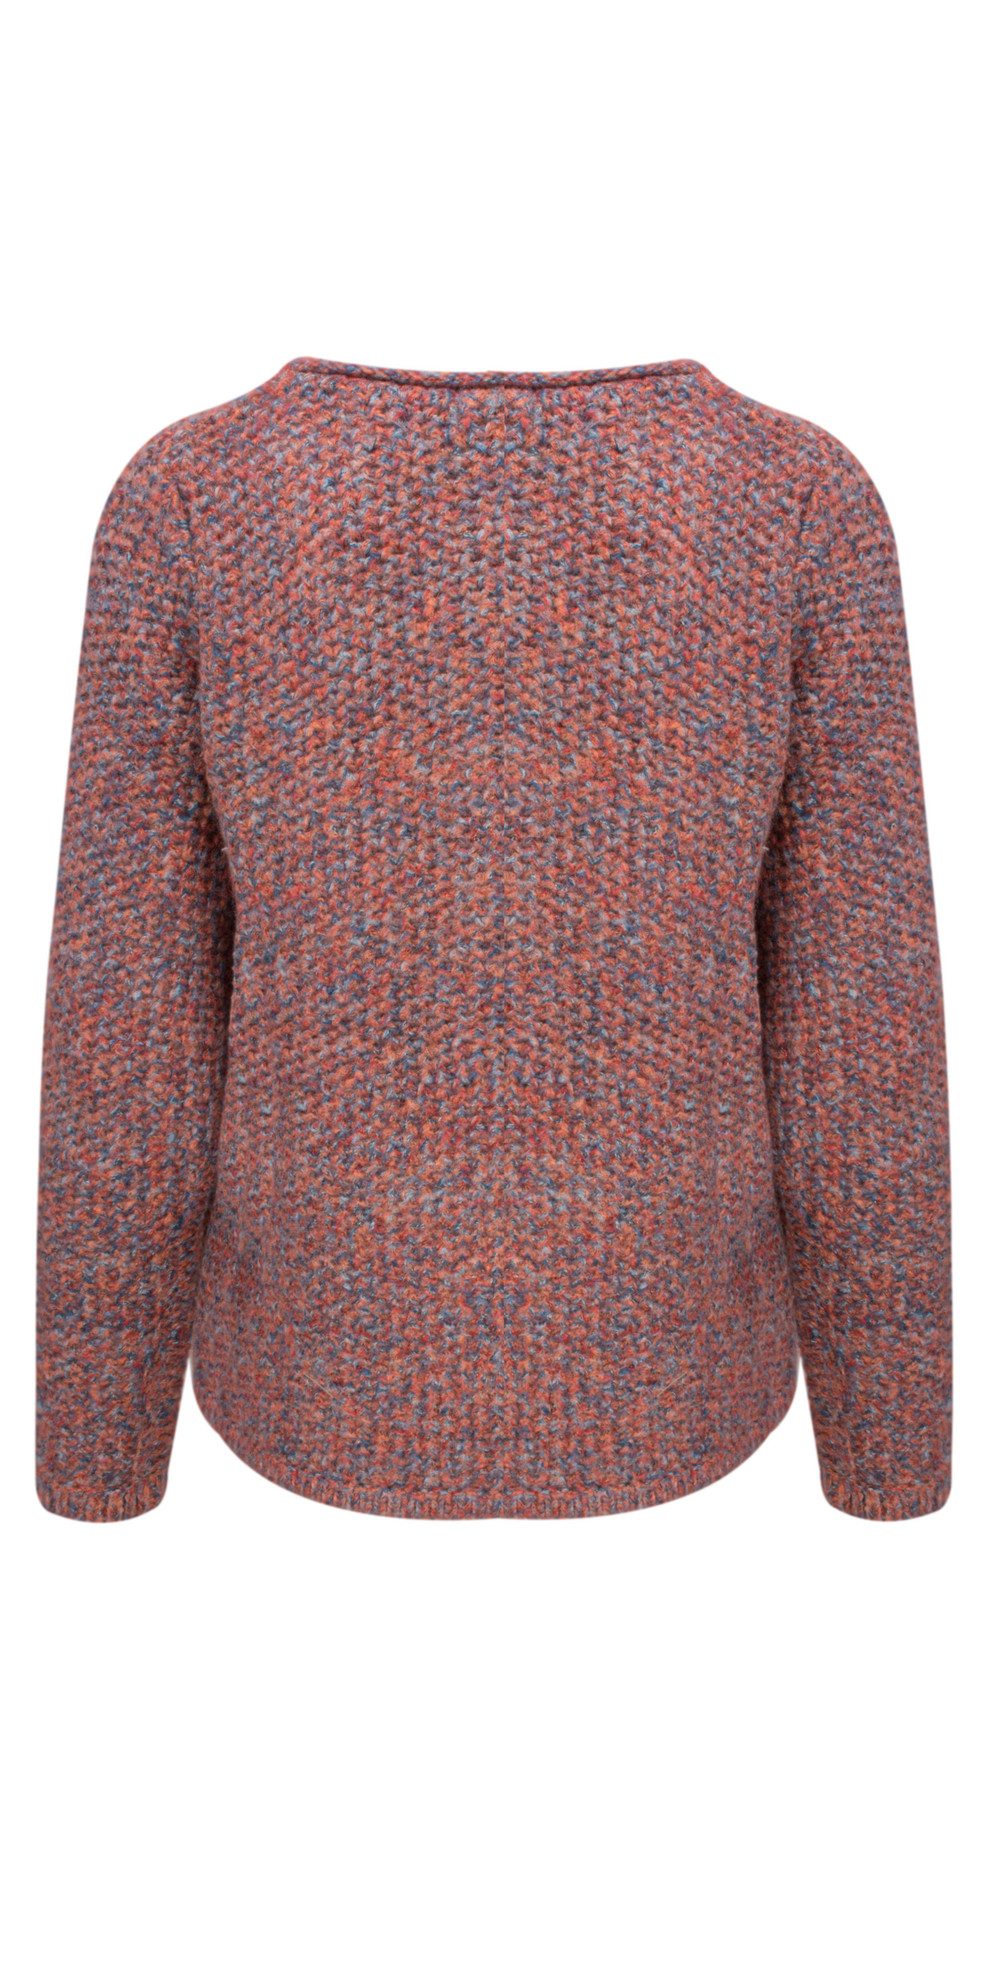 Soft Textured Knit Pullover main image